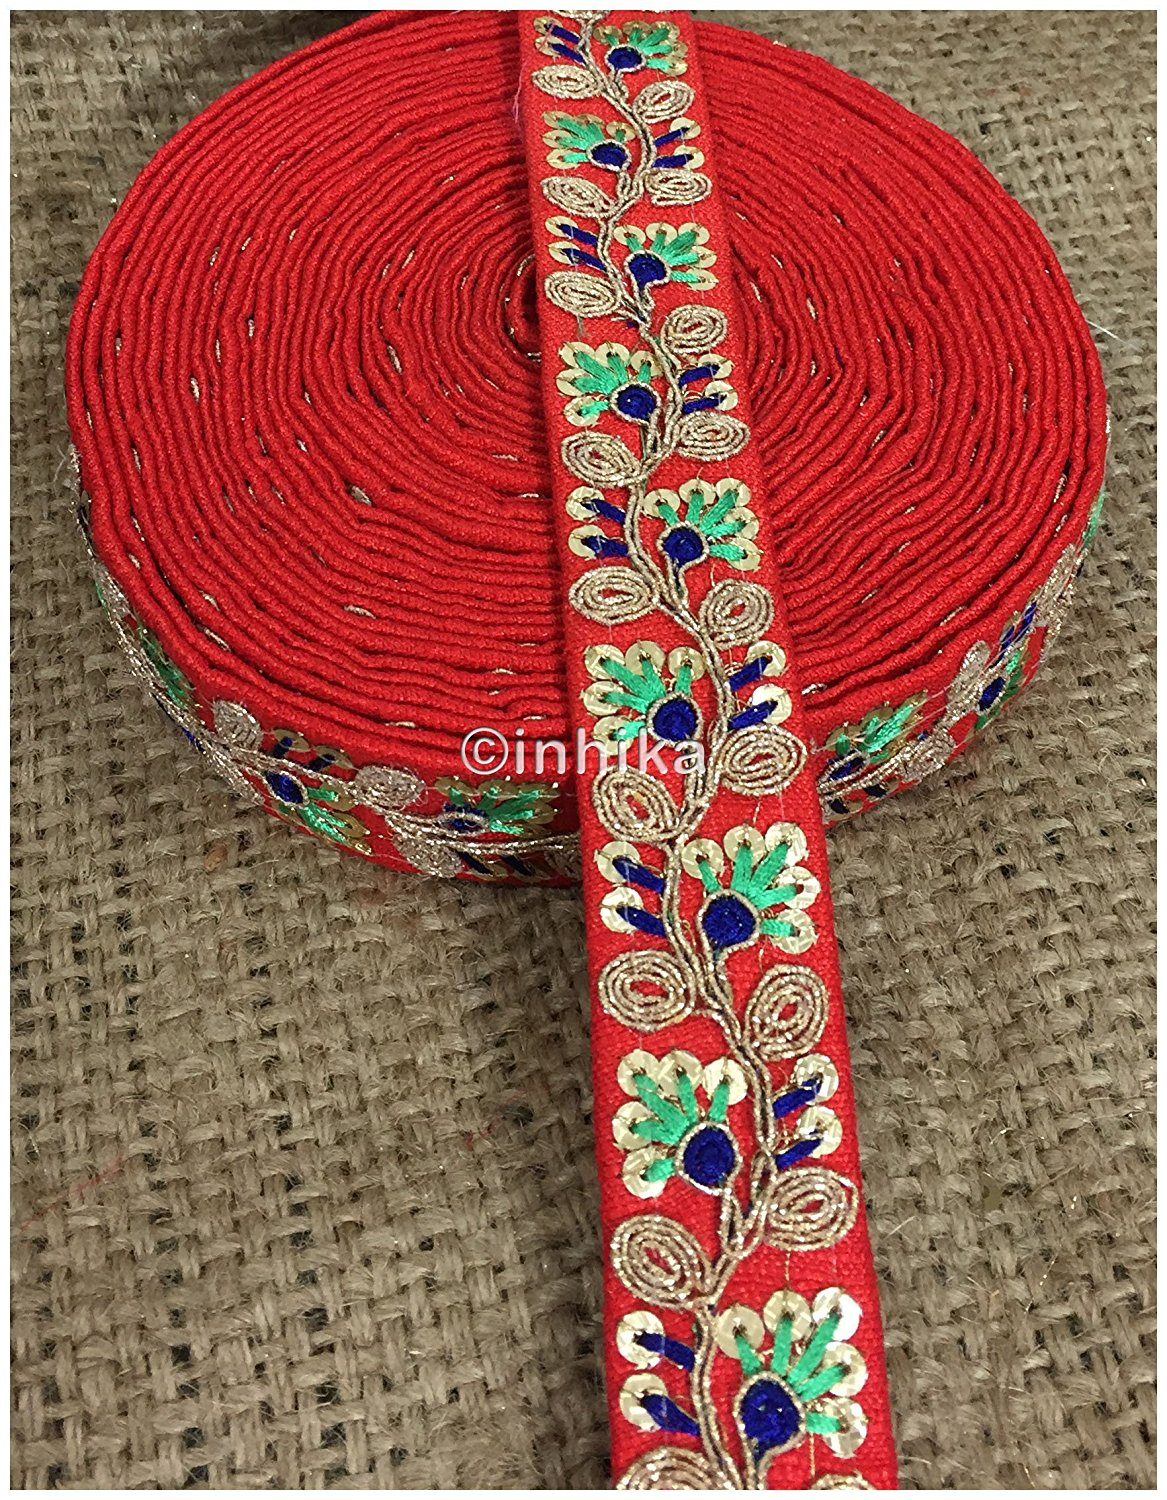 lace trim fabric lace material for dressmaking by the yard Red, Embroidery, Sequins, 2 Inch Wide material Cotton Mix